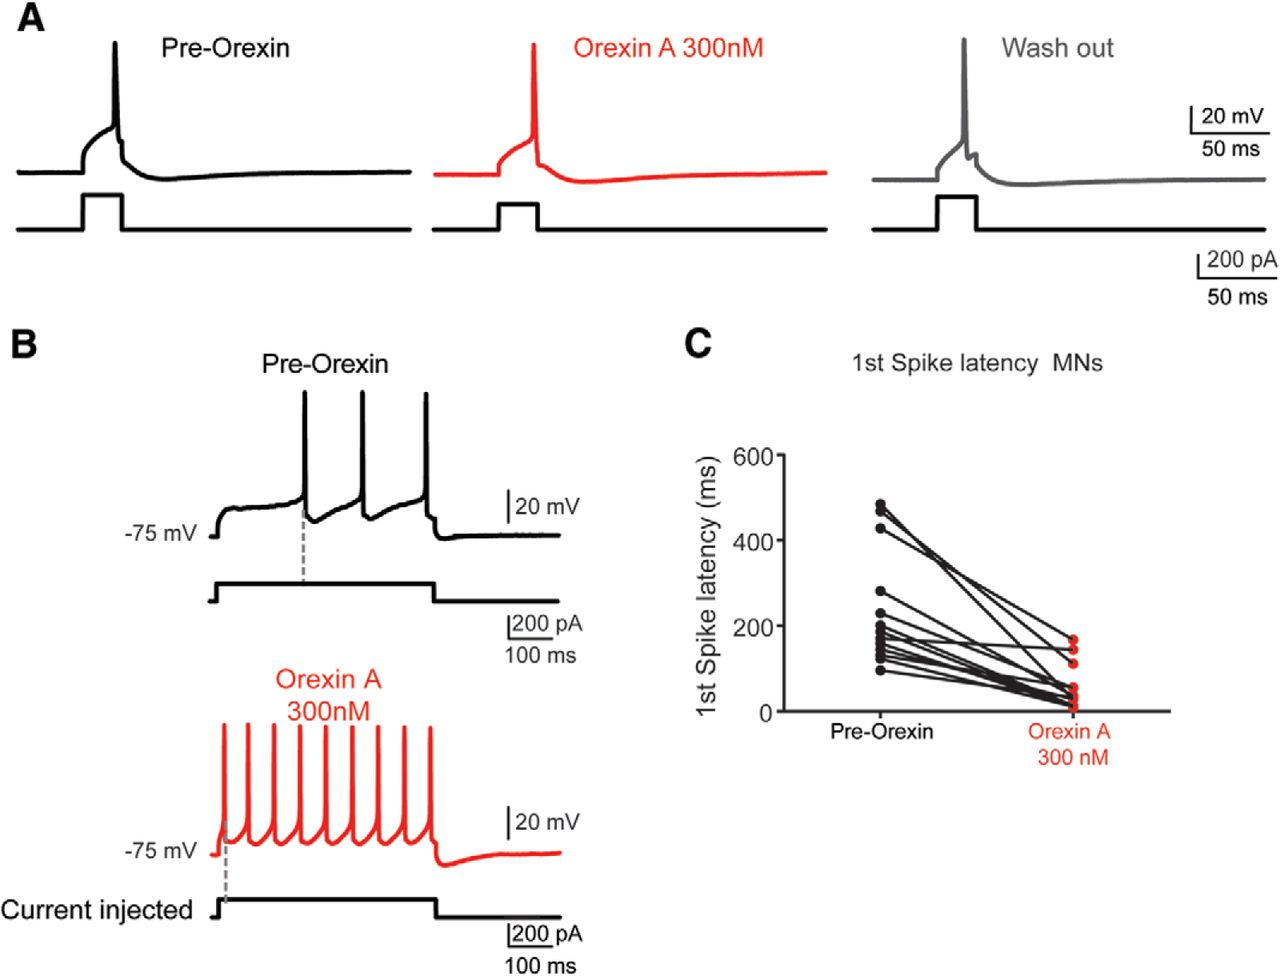 Orexinergic Modulation of Spinal Motor Activity in the